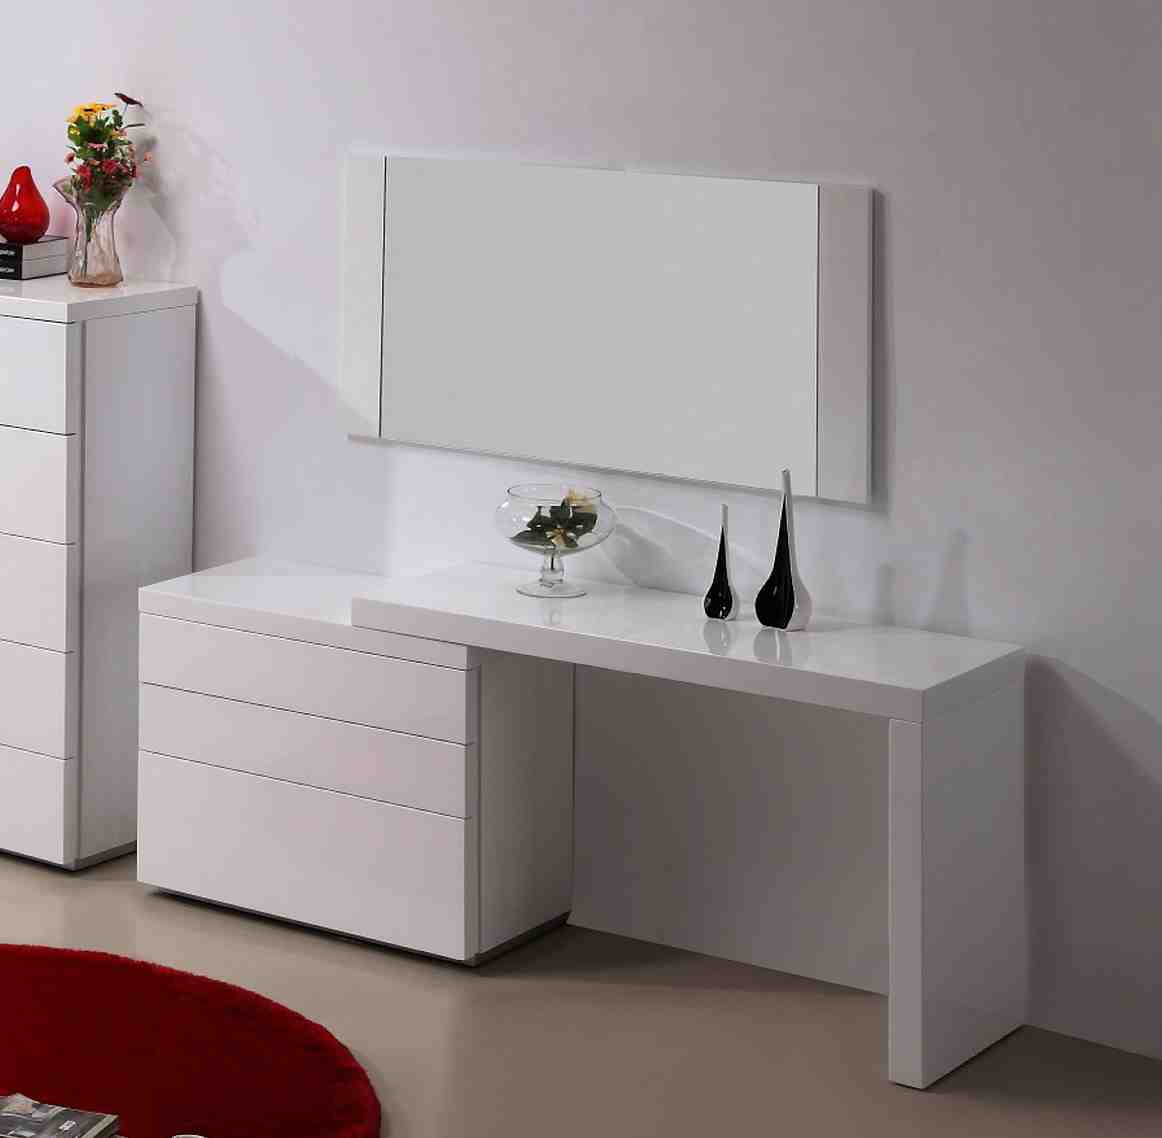 vanity dresser ikea home furniture design. Black Bedroom Furniture Sets. Home Design Ideas